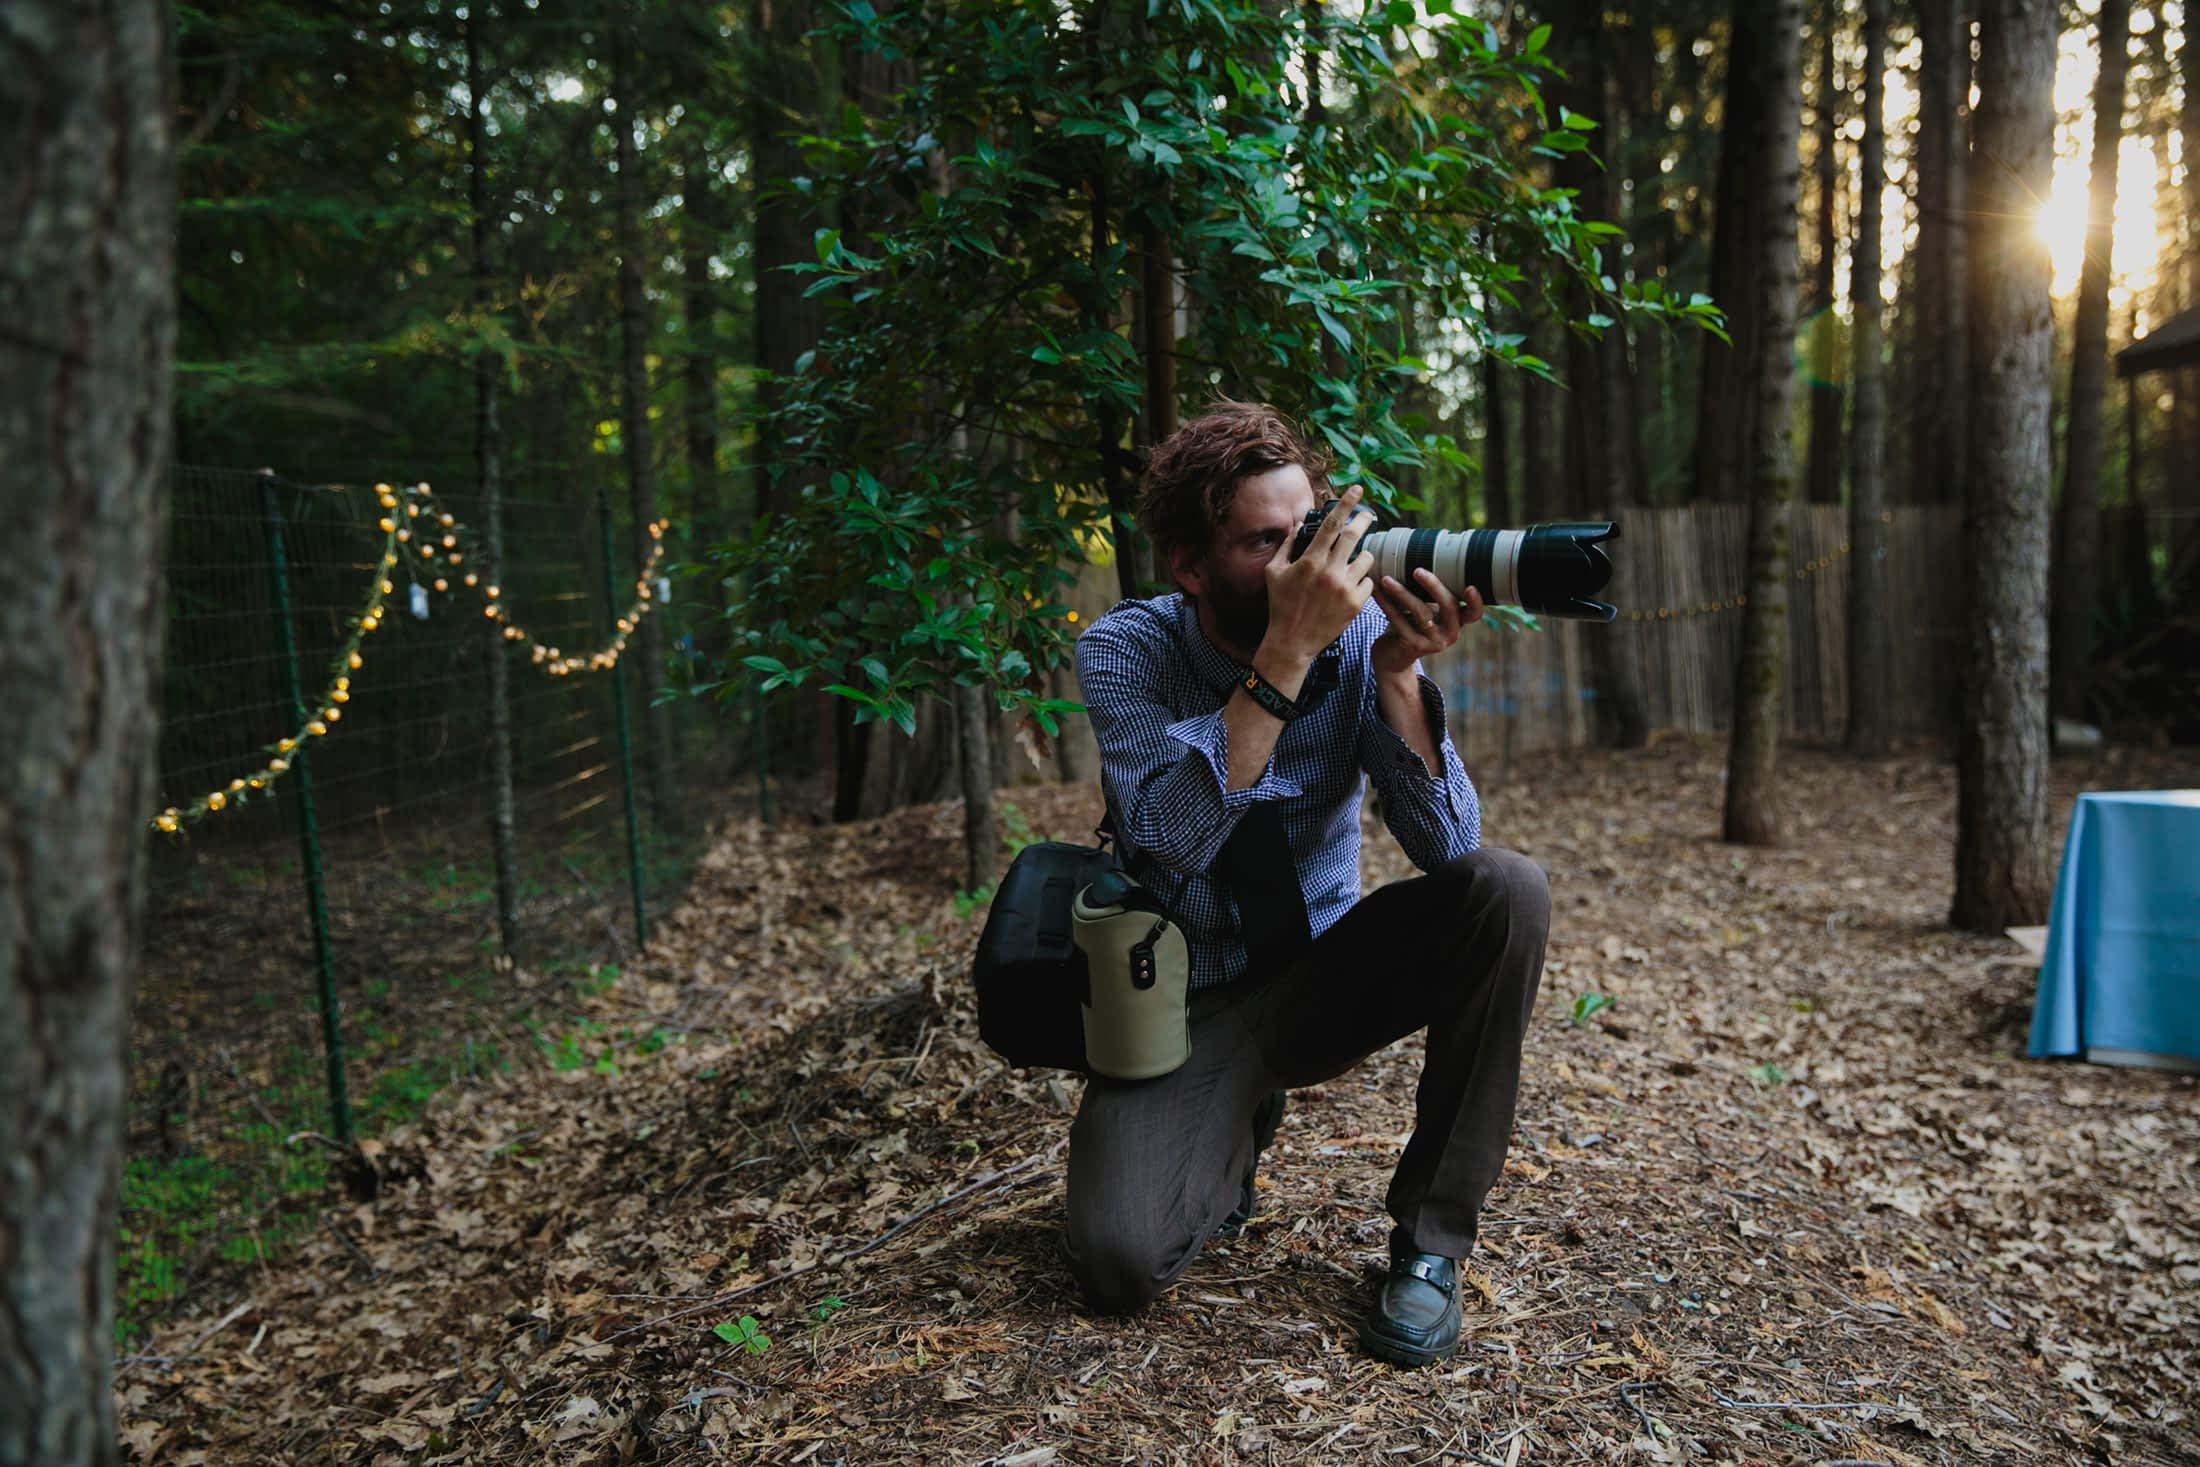 Maurice kneels on one knee while photographing with the 70-200mm lens.